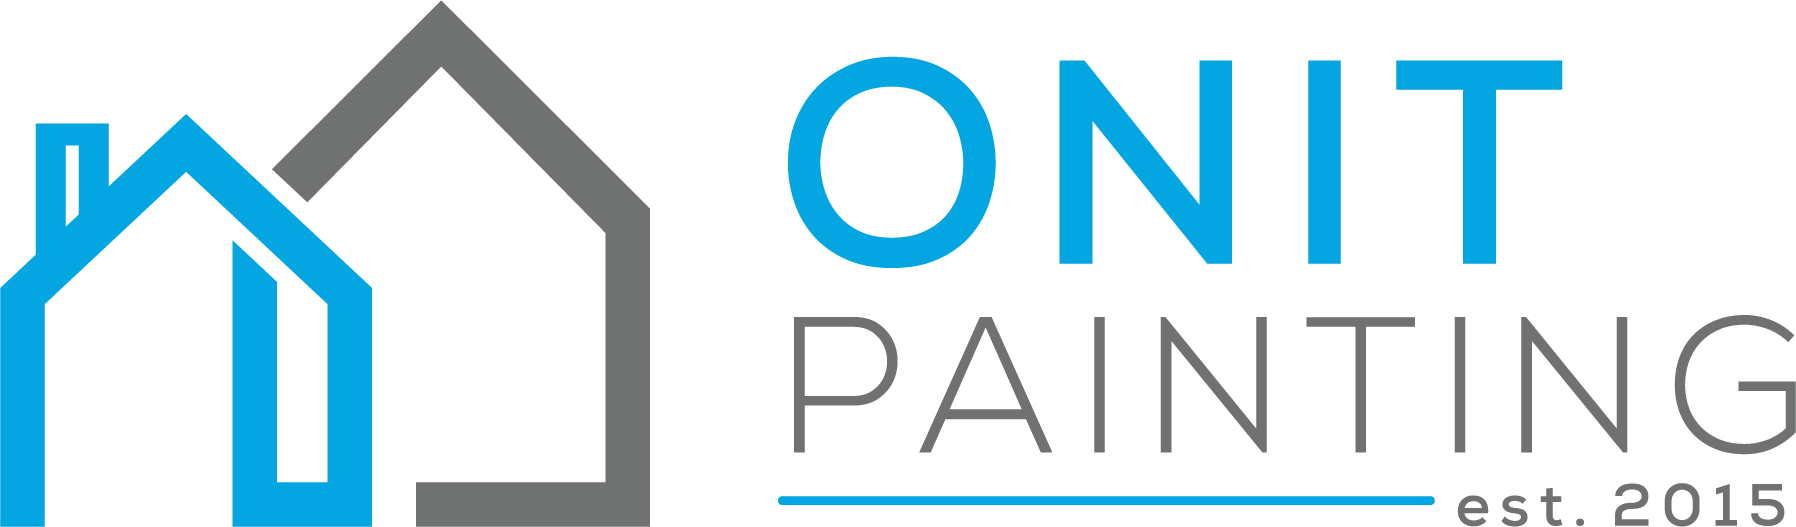 ONiT Painting reviews   Painters at 7525 E 39 St - Indianapolis IN